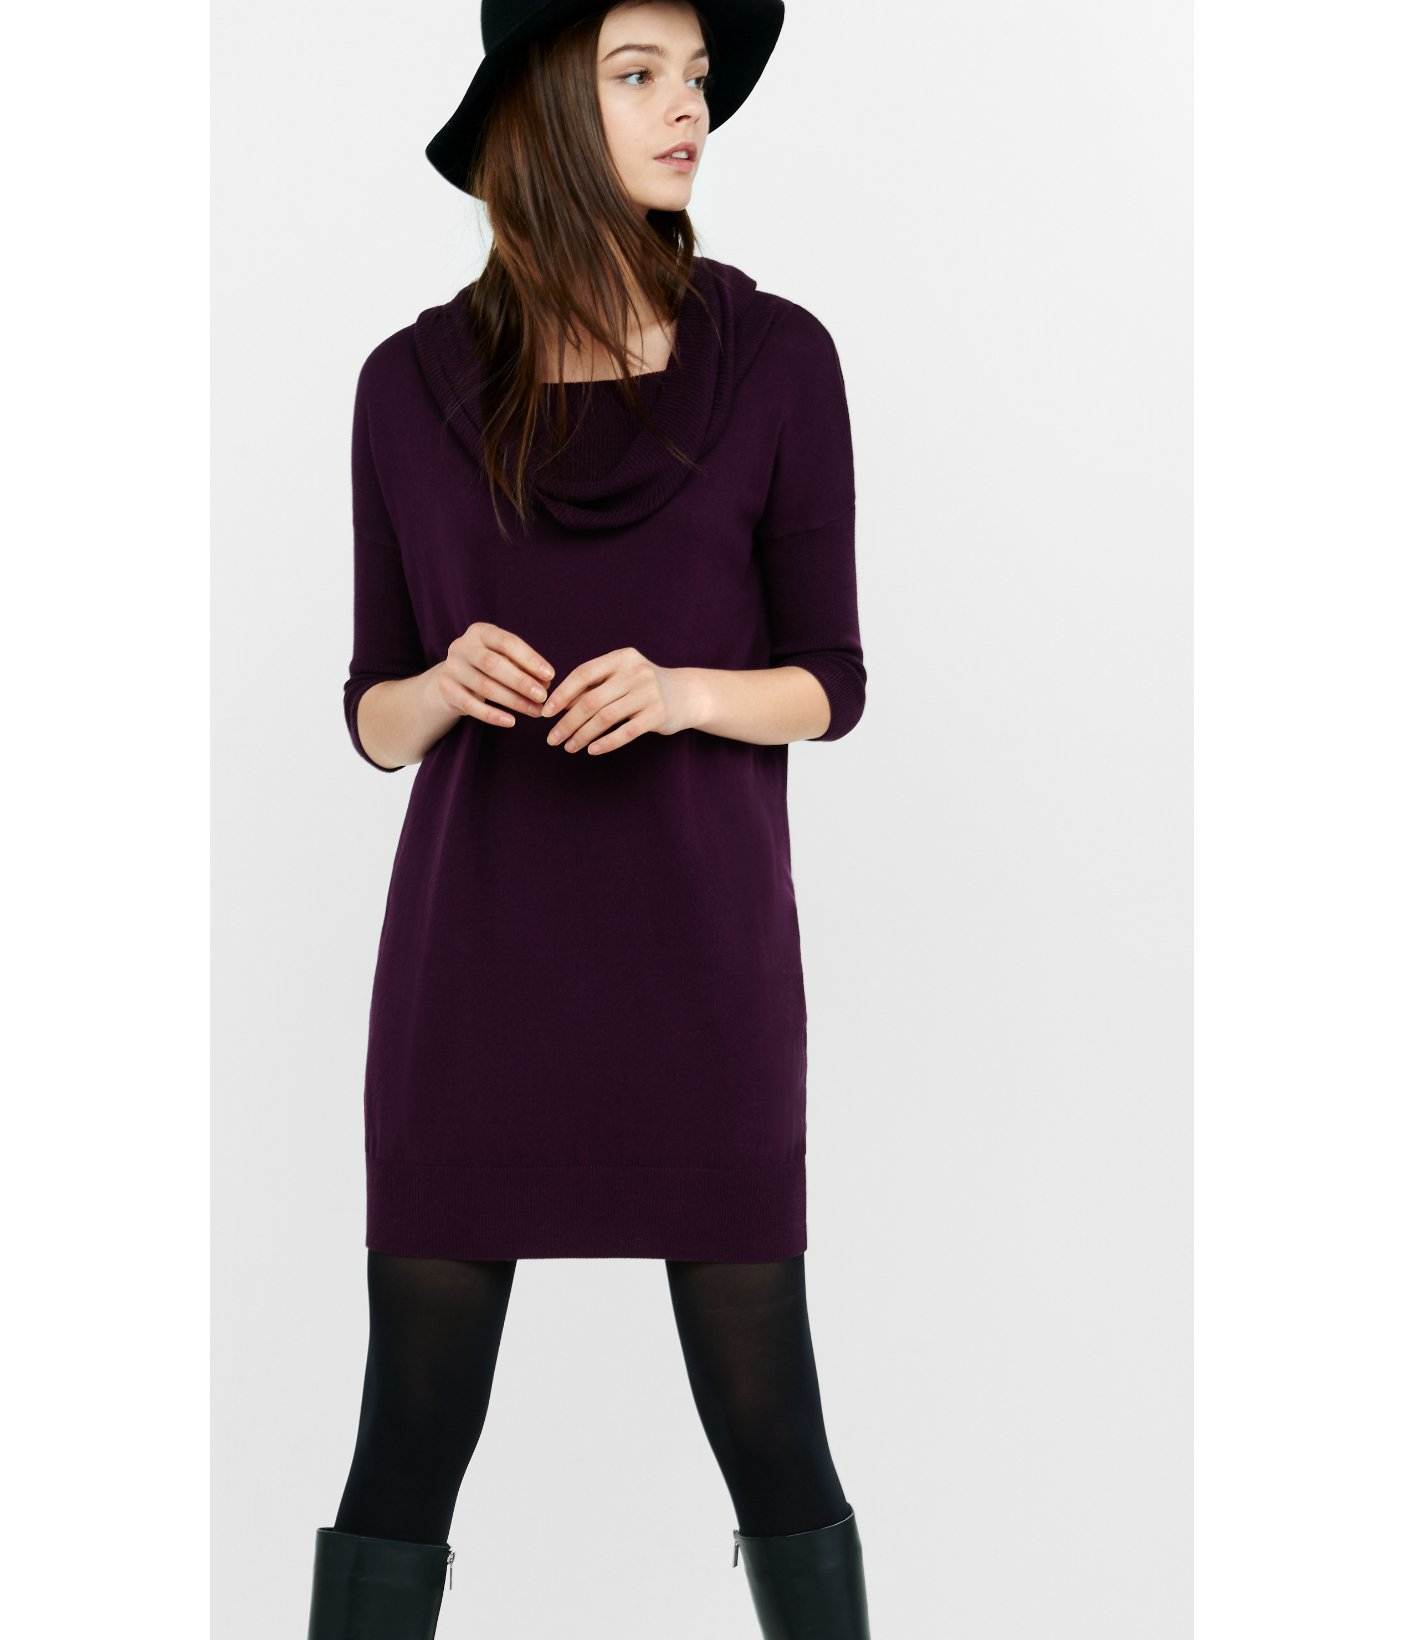 Express Banded Bottom Cowl Neck Sweater Dress in Purple | Lyst